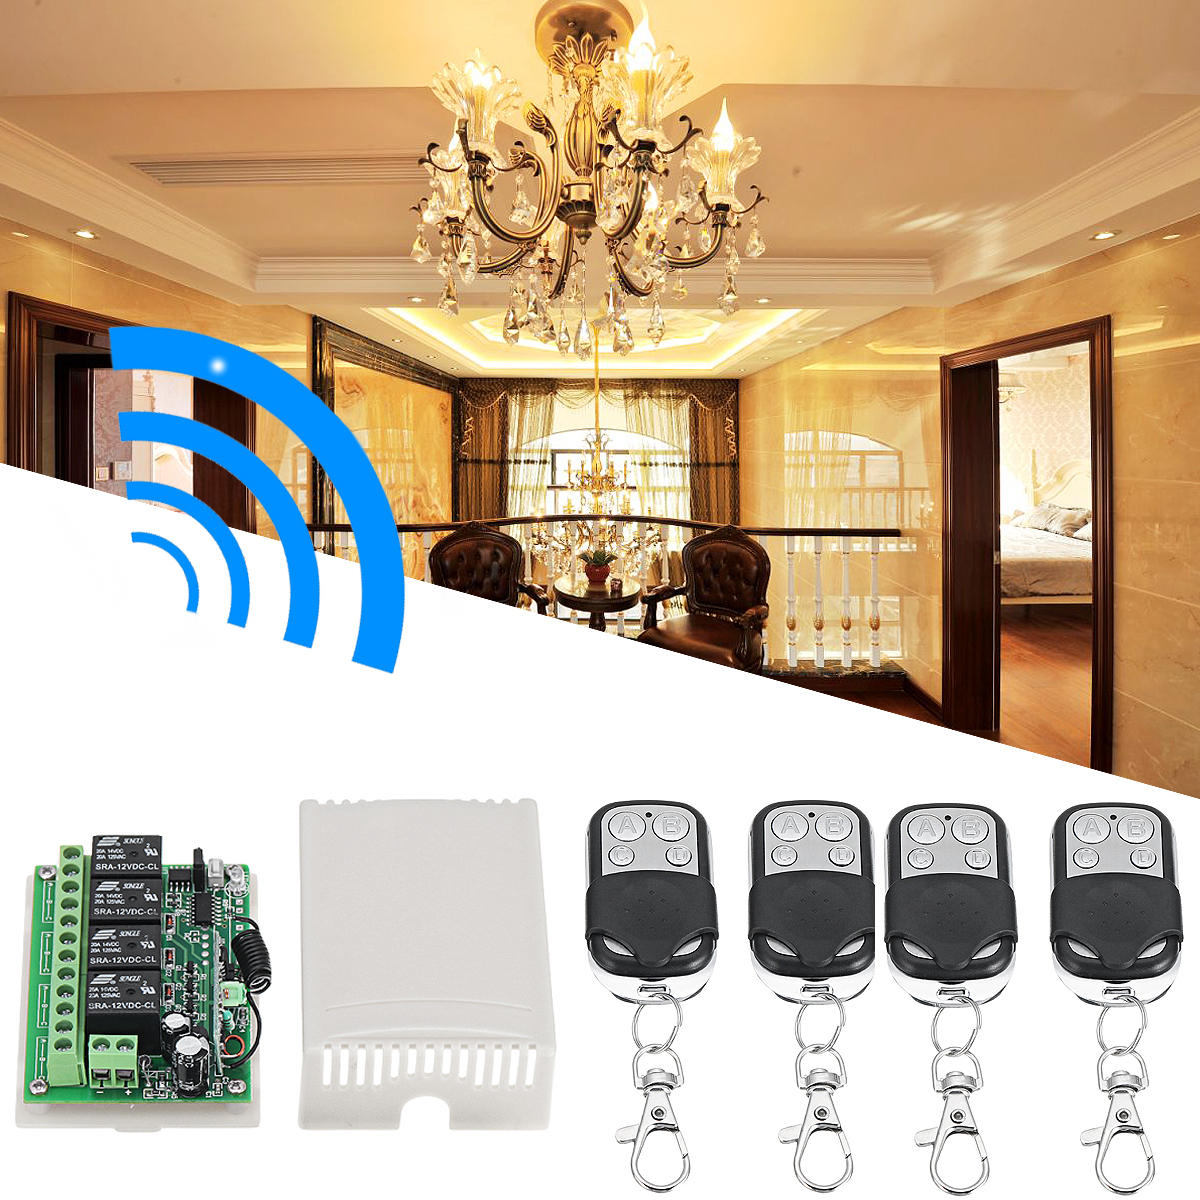 DC12V 4 Transmitter & Receiver Relay 4CH 433MHz Wireless Remote Control Light Switch from Banggood